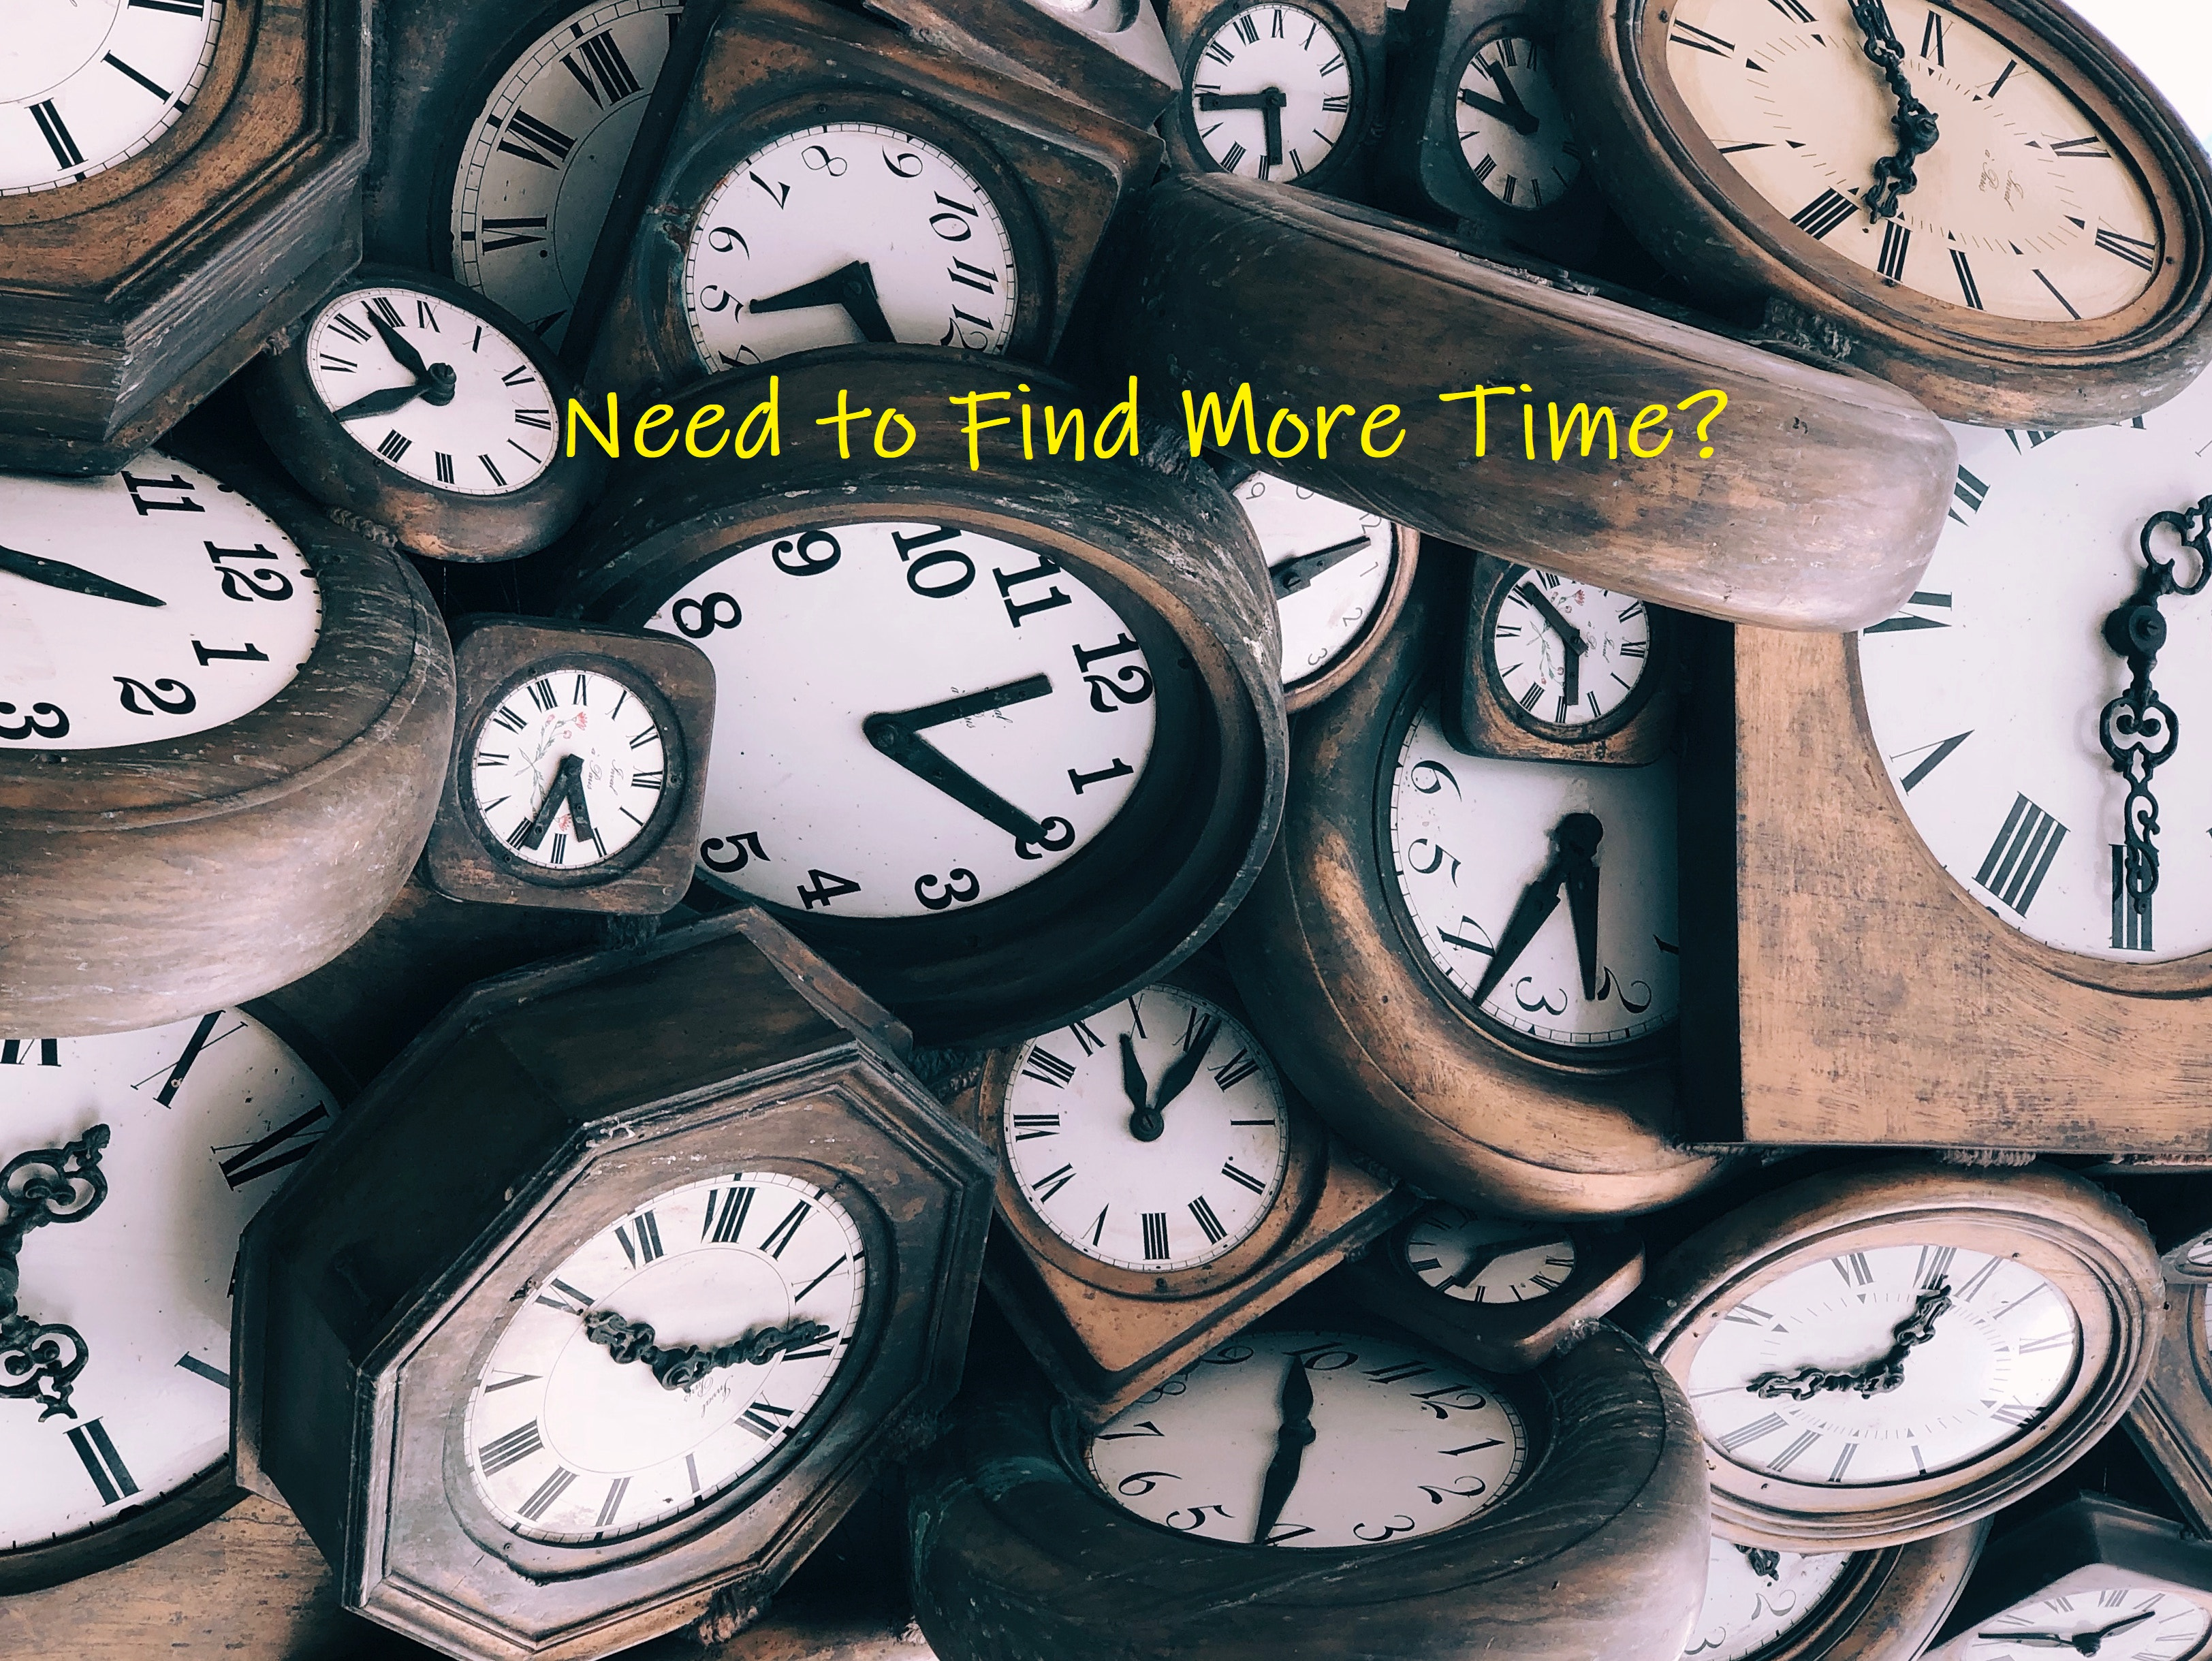 Need To Find More Time?